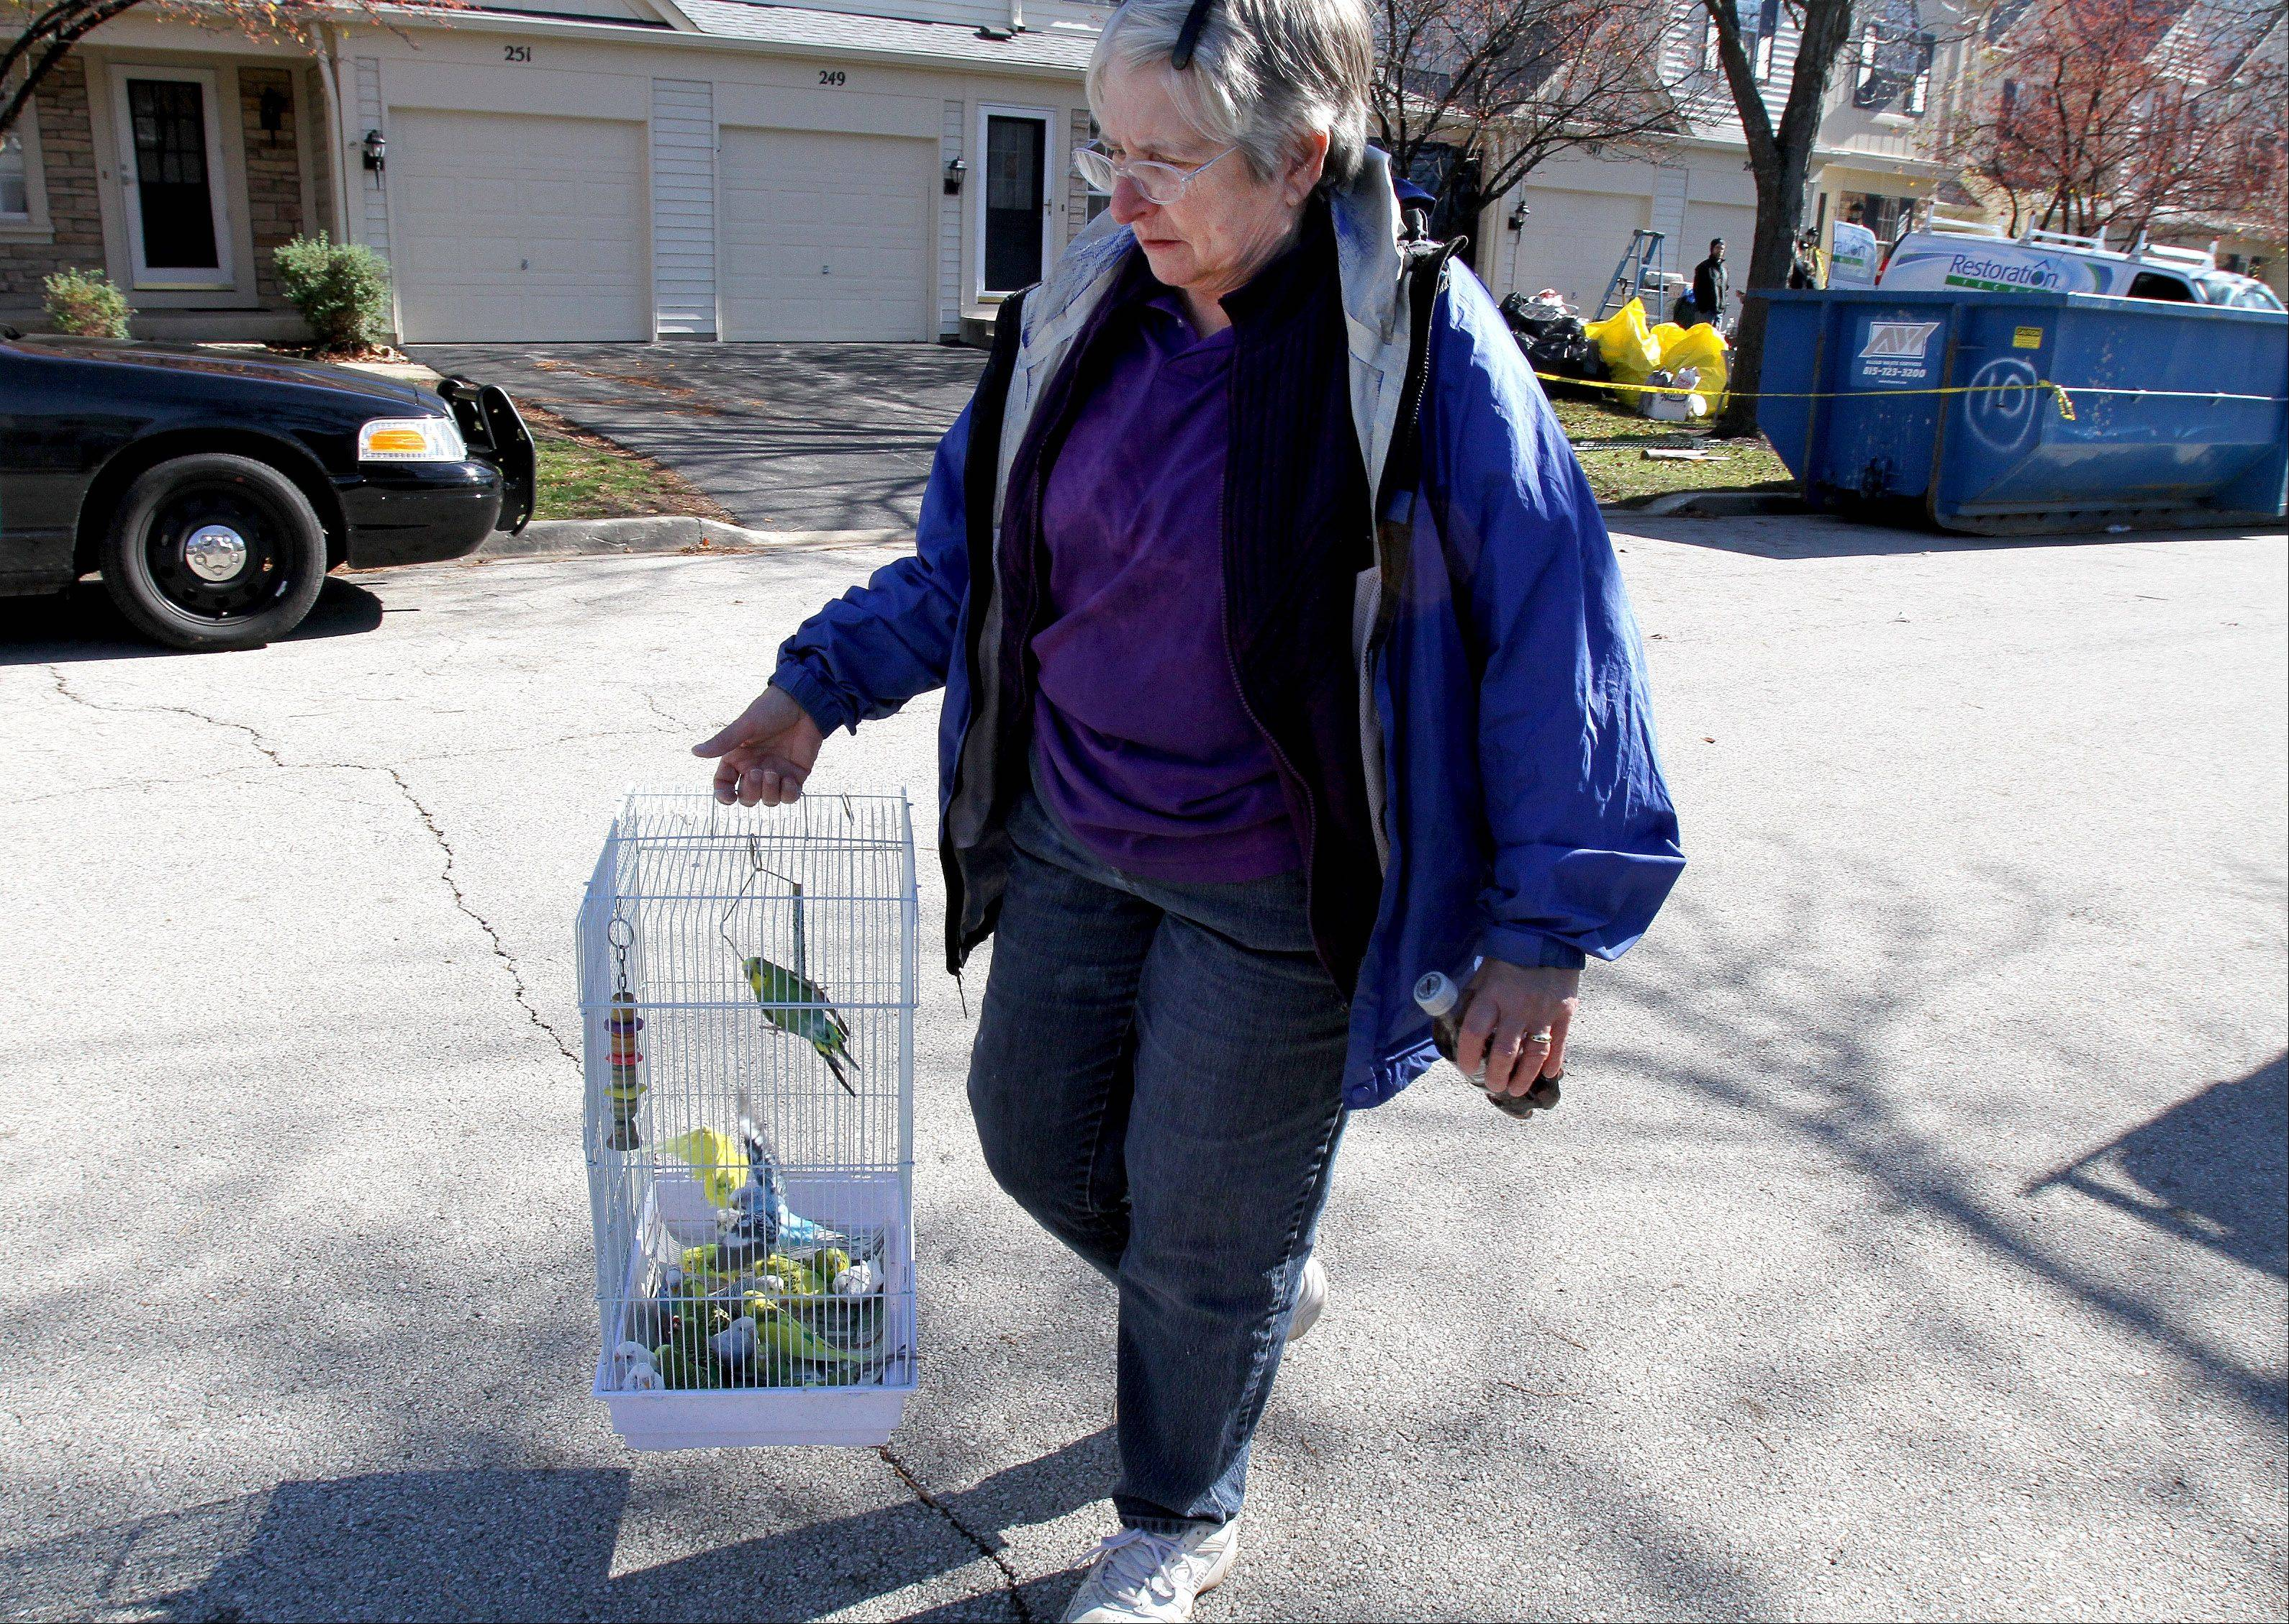 Diana Federl, head of adoption at the Greater Chicago Cage Bird Club, carries birds from a home on the 200 block of Shadybrook Lane, as the city took over clean up on Friday.